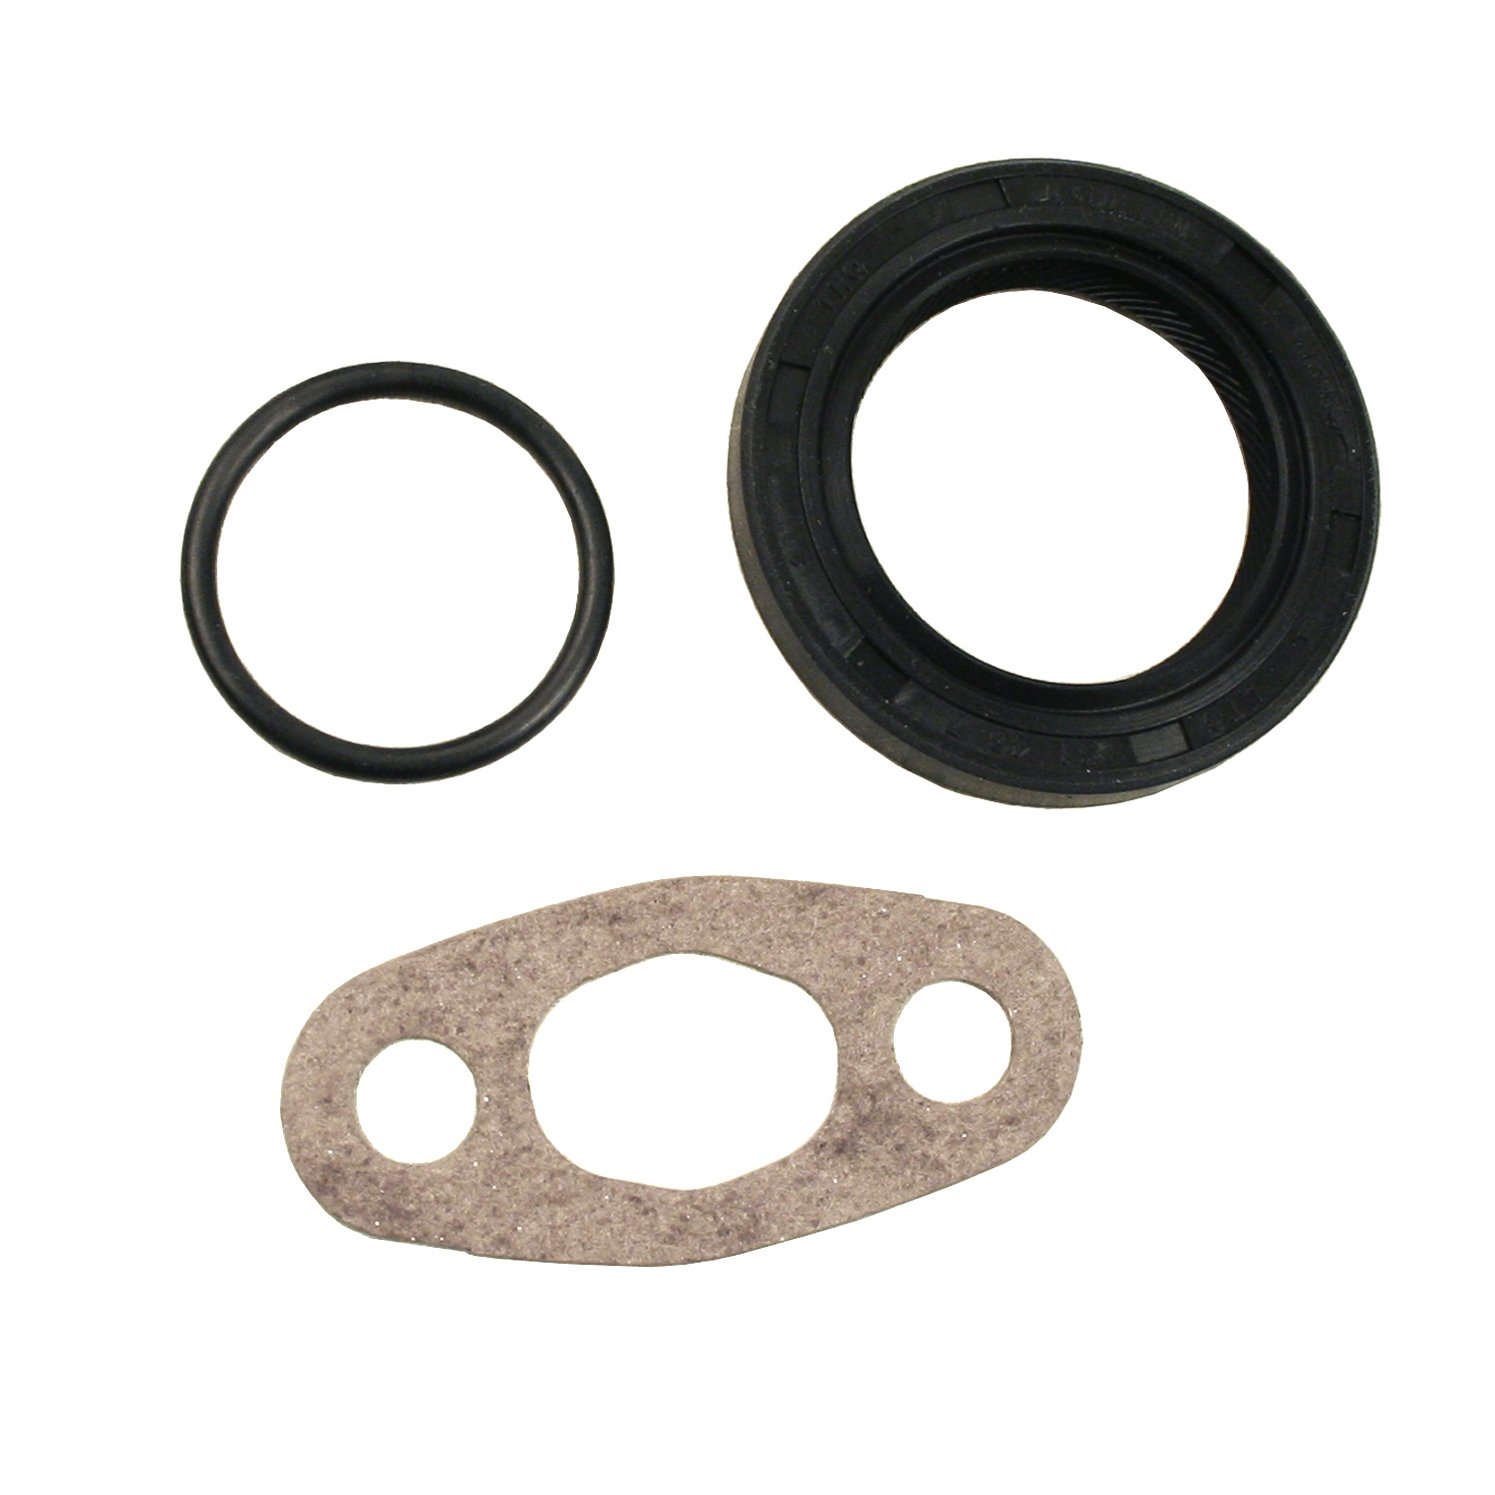 Beck Arnley 039-8014 Oil Pump Install Kit BEC039-8014